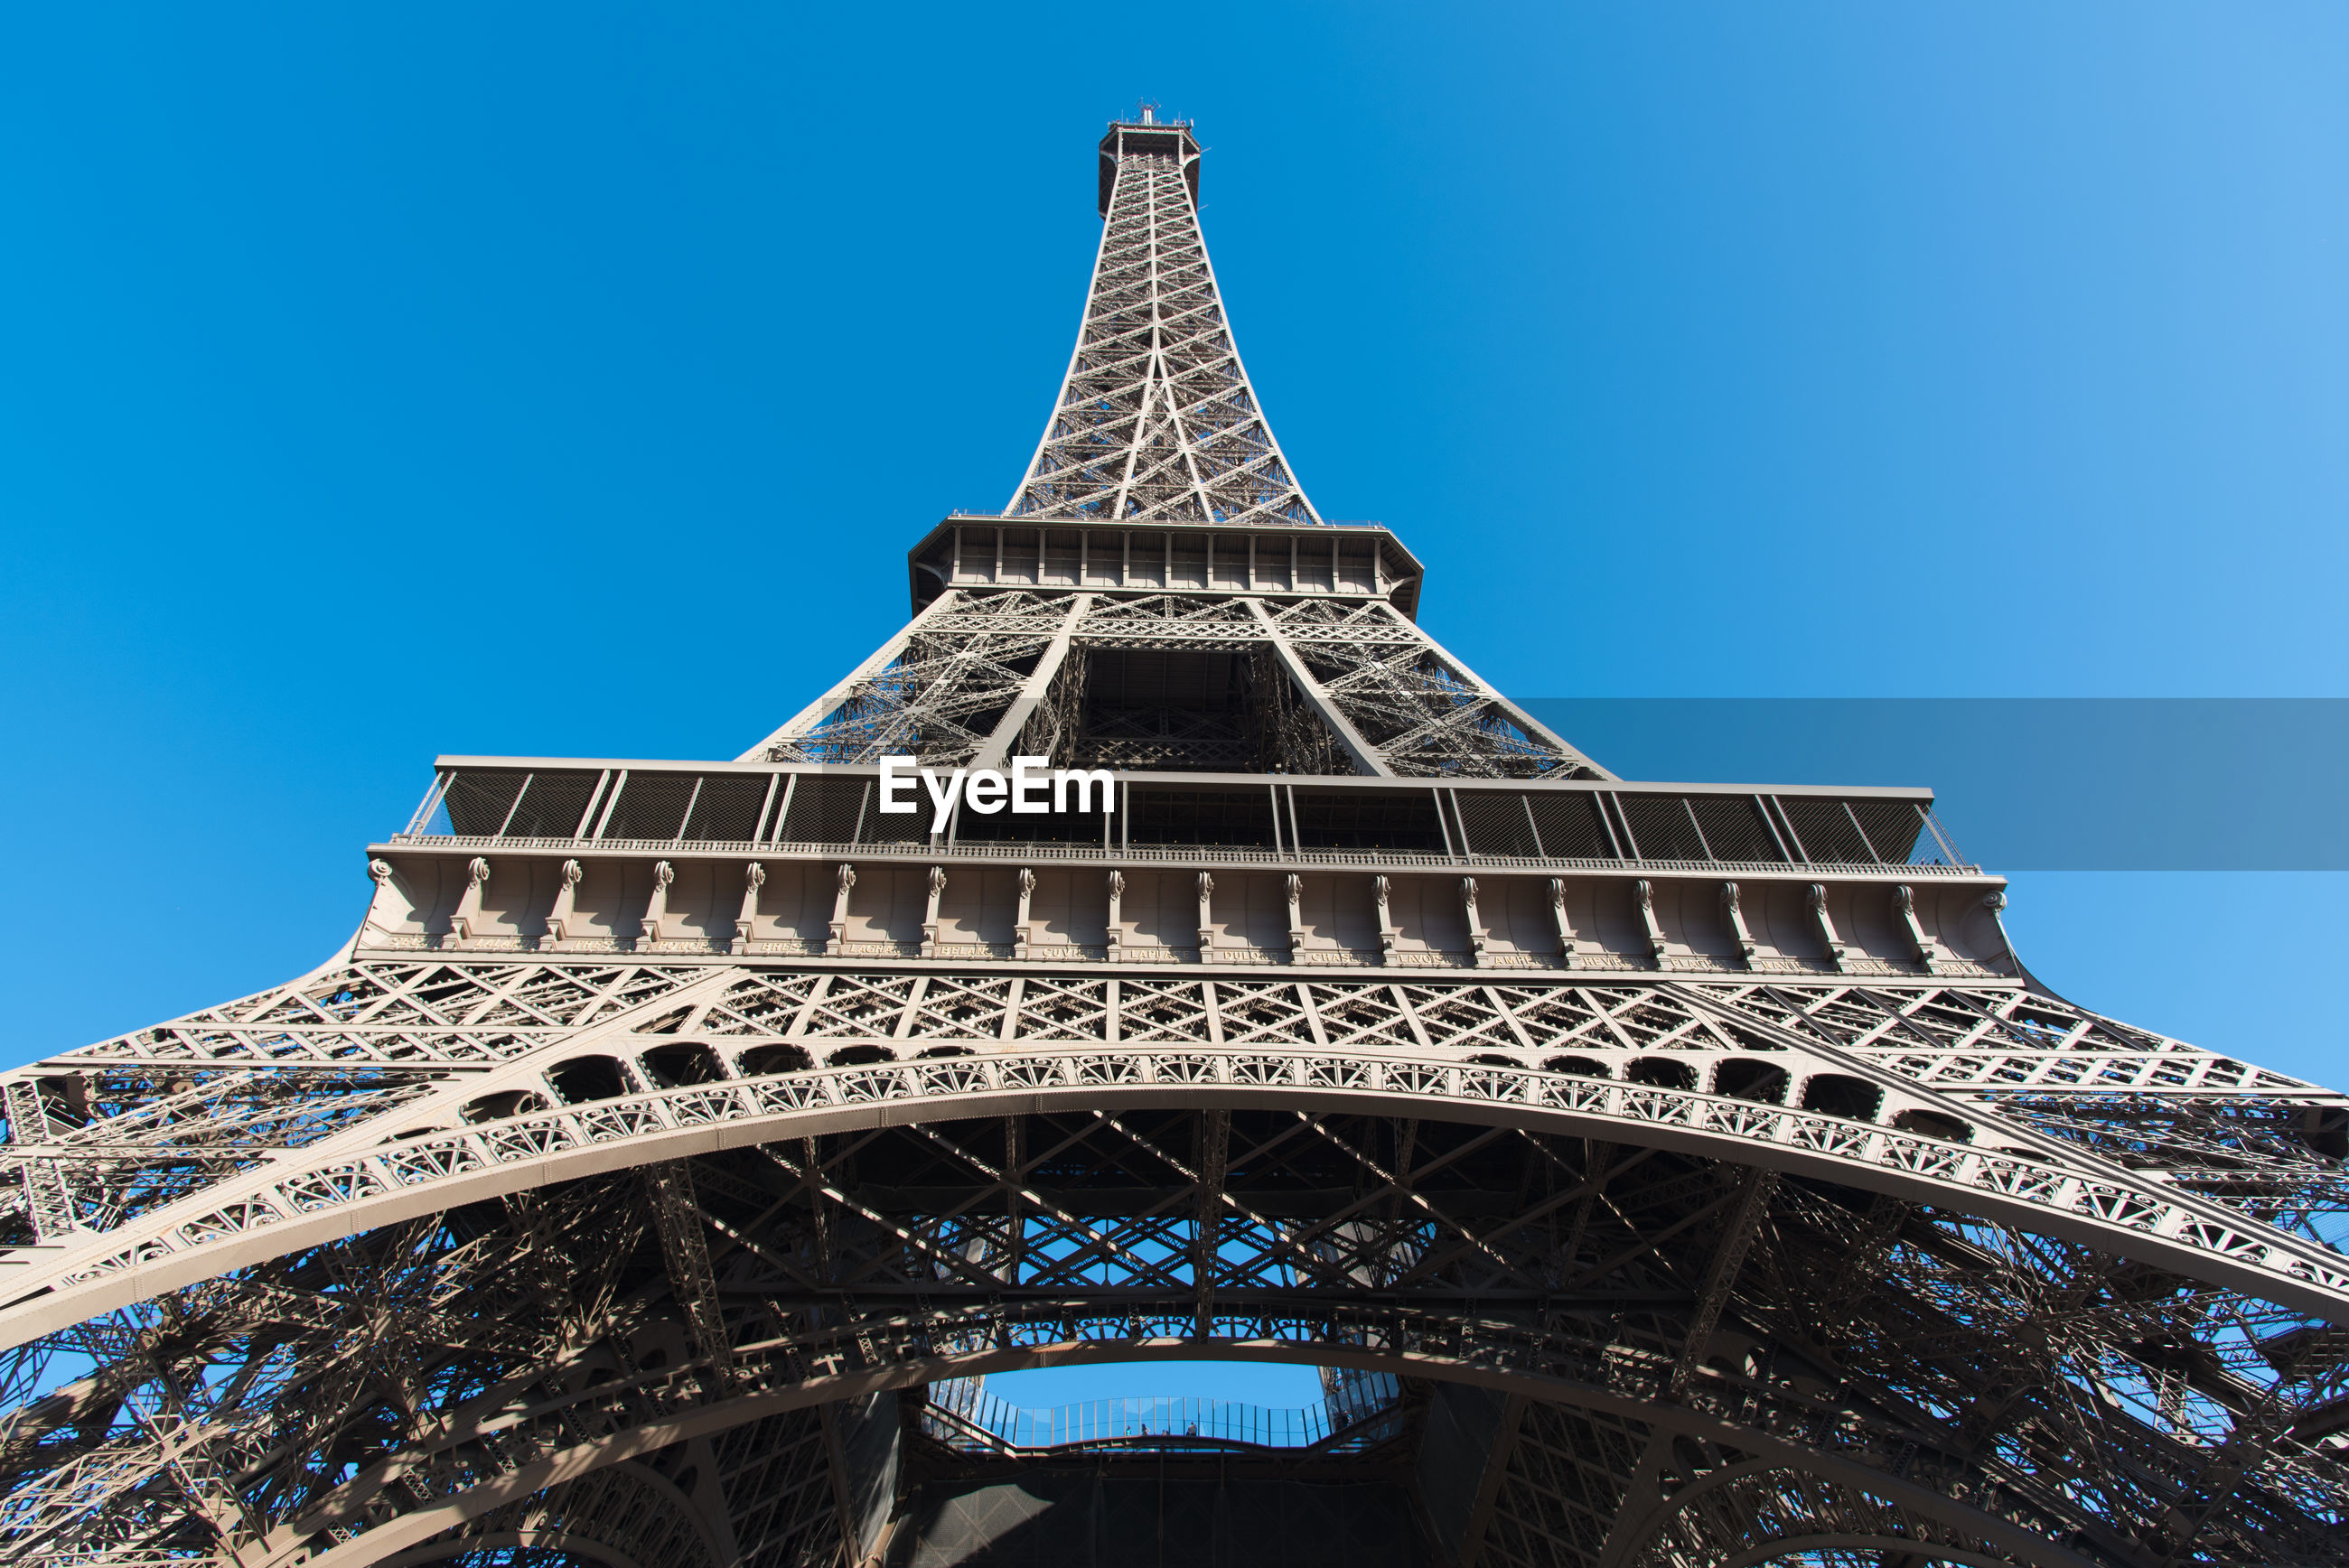 Low angle view of eiffel tower against clear blue sky during sunny day